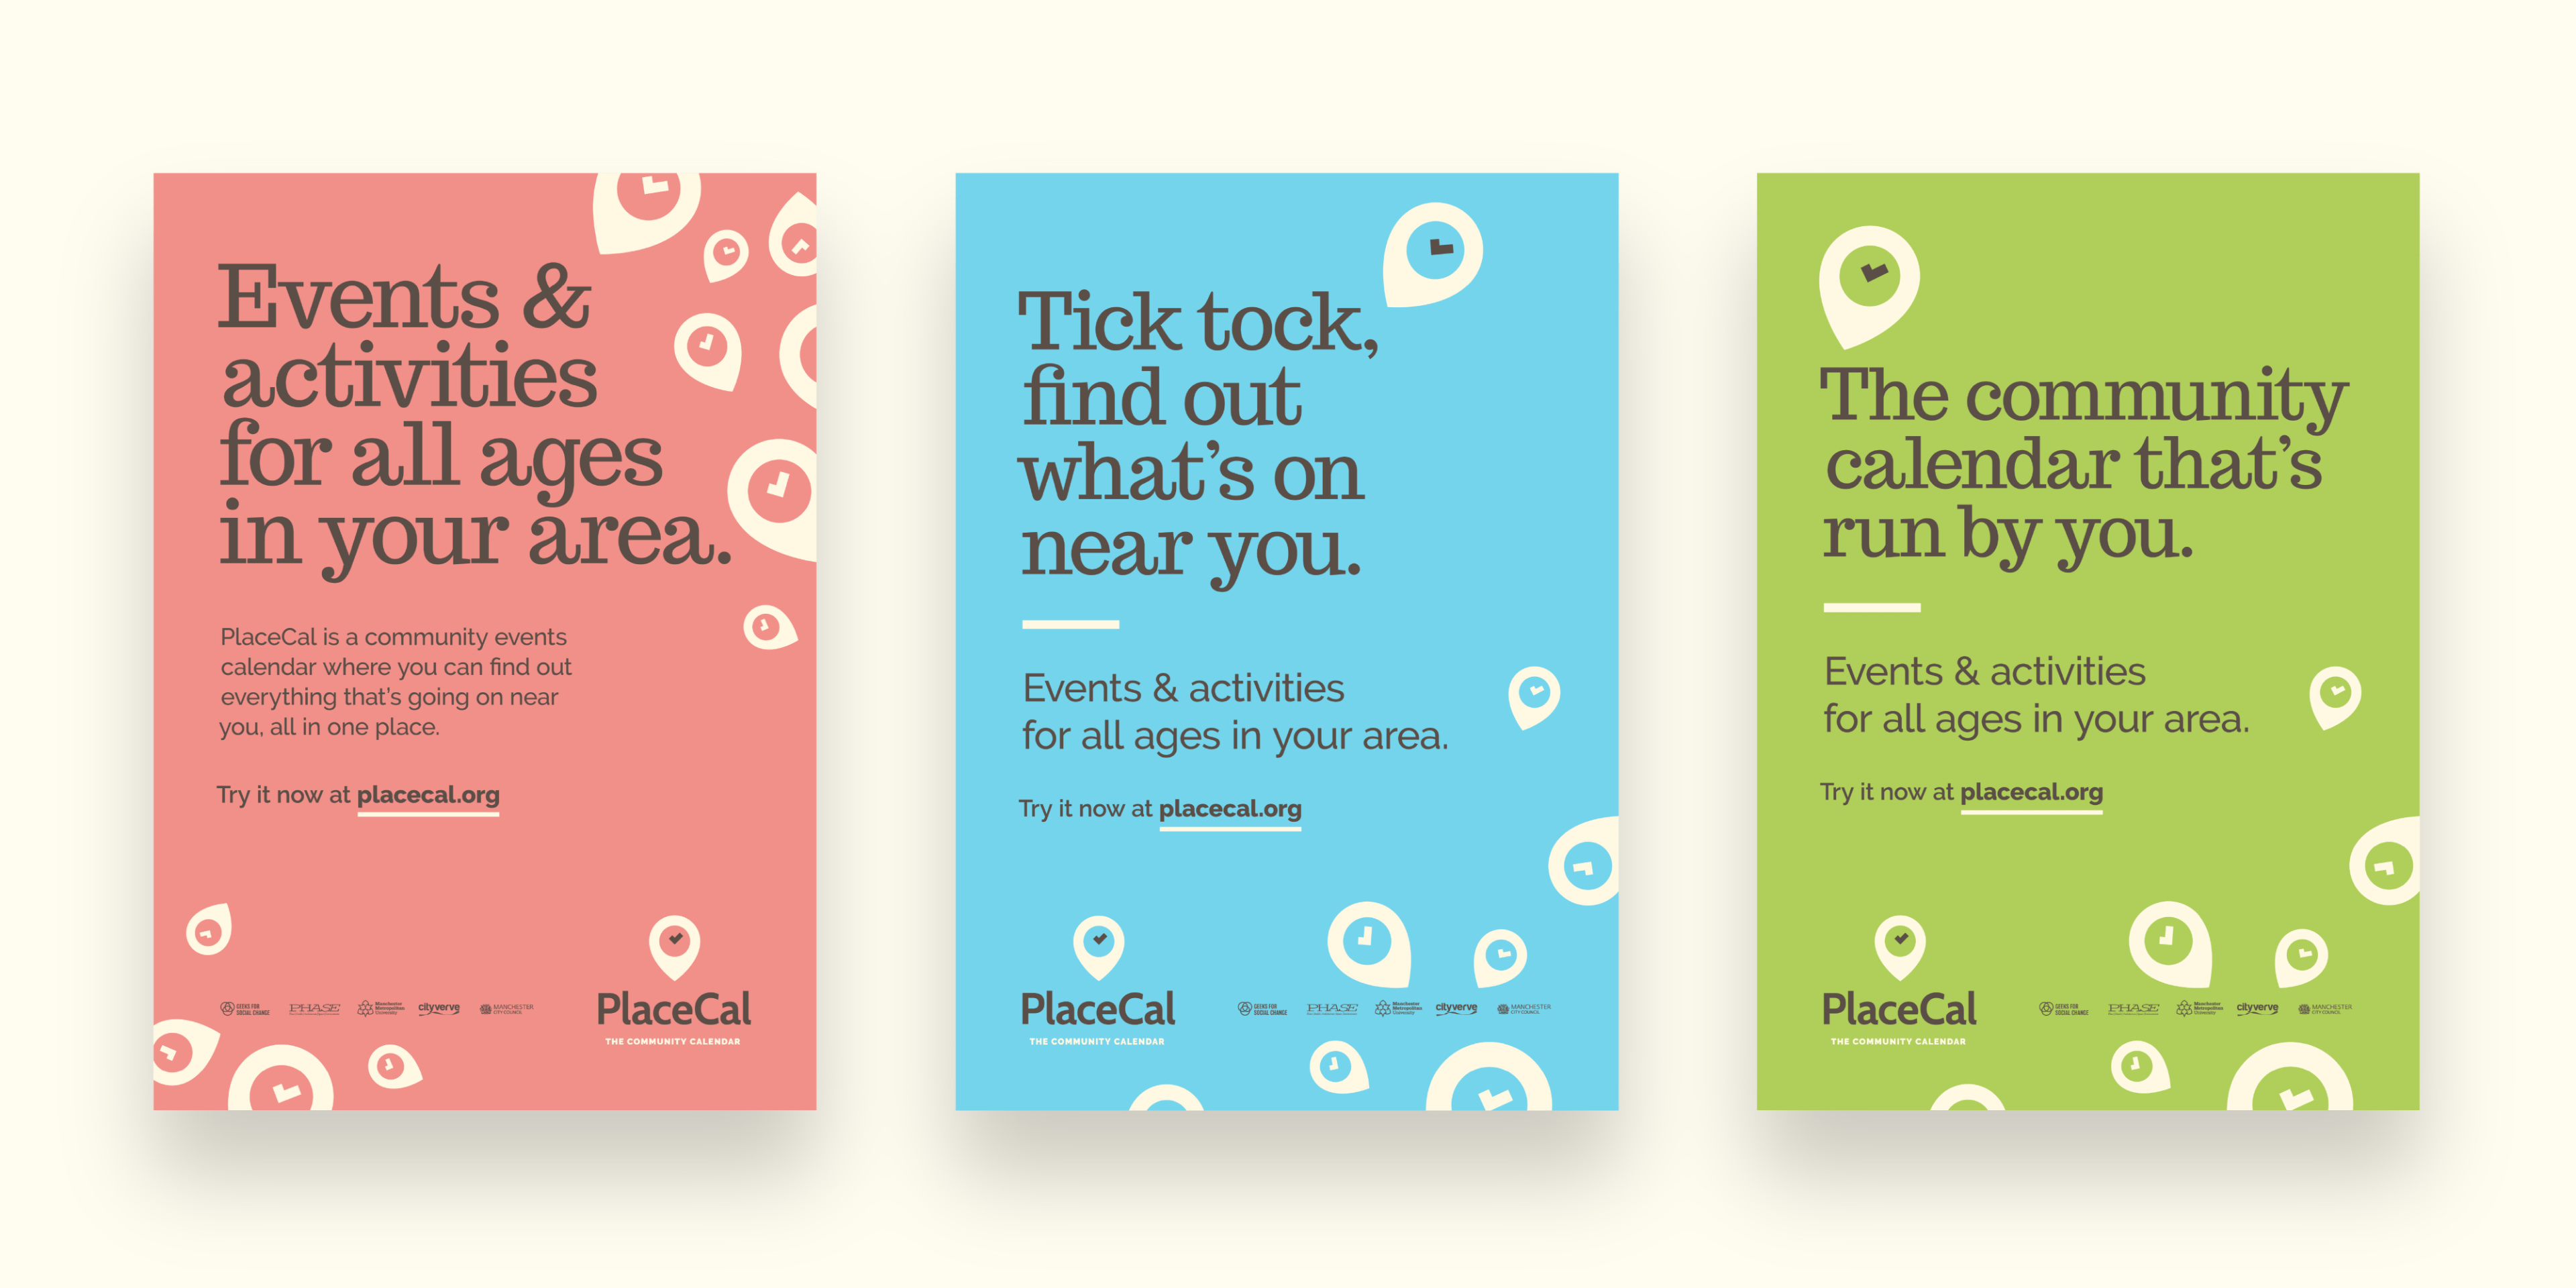 Three PlaceCal posters against cream backdrop, the posters are in three colour ways, soft pink, soft blue and soft green. Each have a strong serif headline promoting PlaceCal, with smaller details in the sans serif typeface. Logo and sponsors run across the bottom. The titles are Events & activities for all ages in your area, Tick tock, find out what's on near you, The community calendar that's run by you.